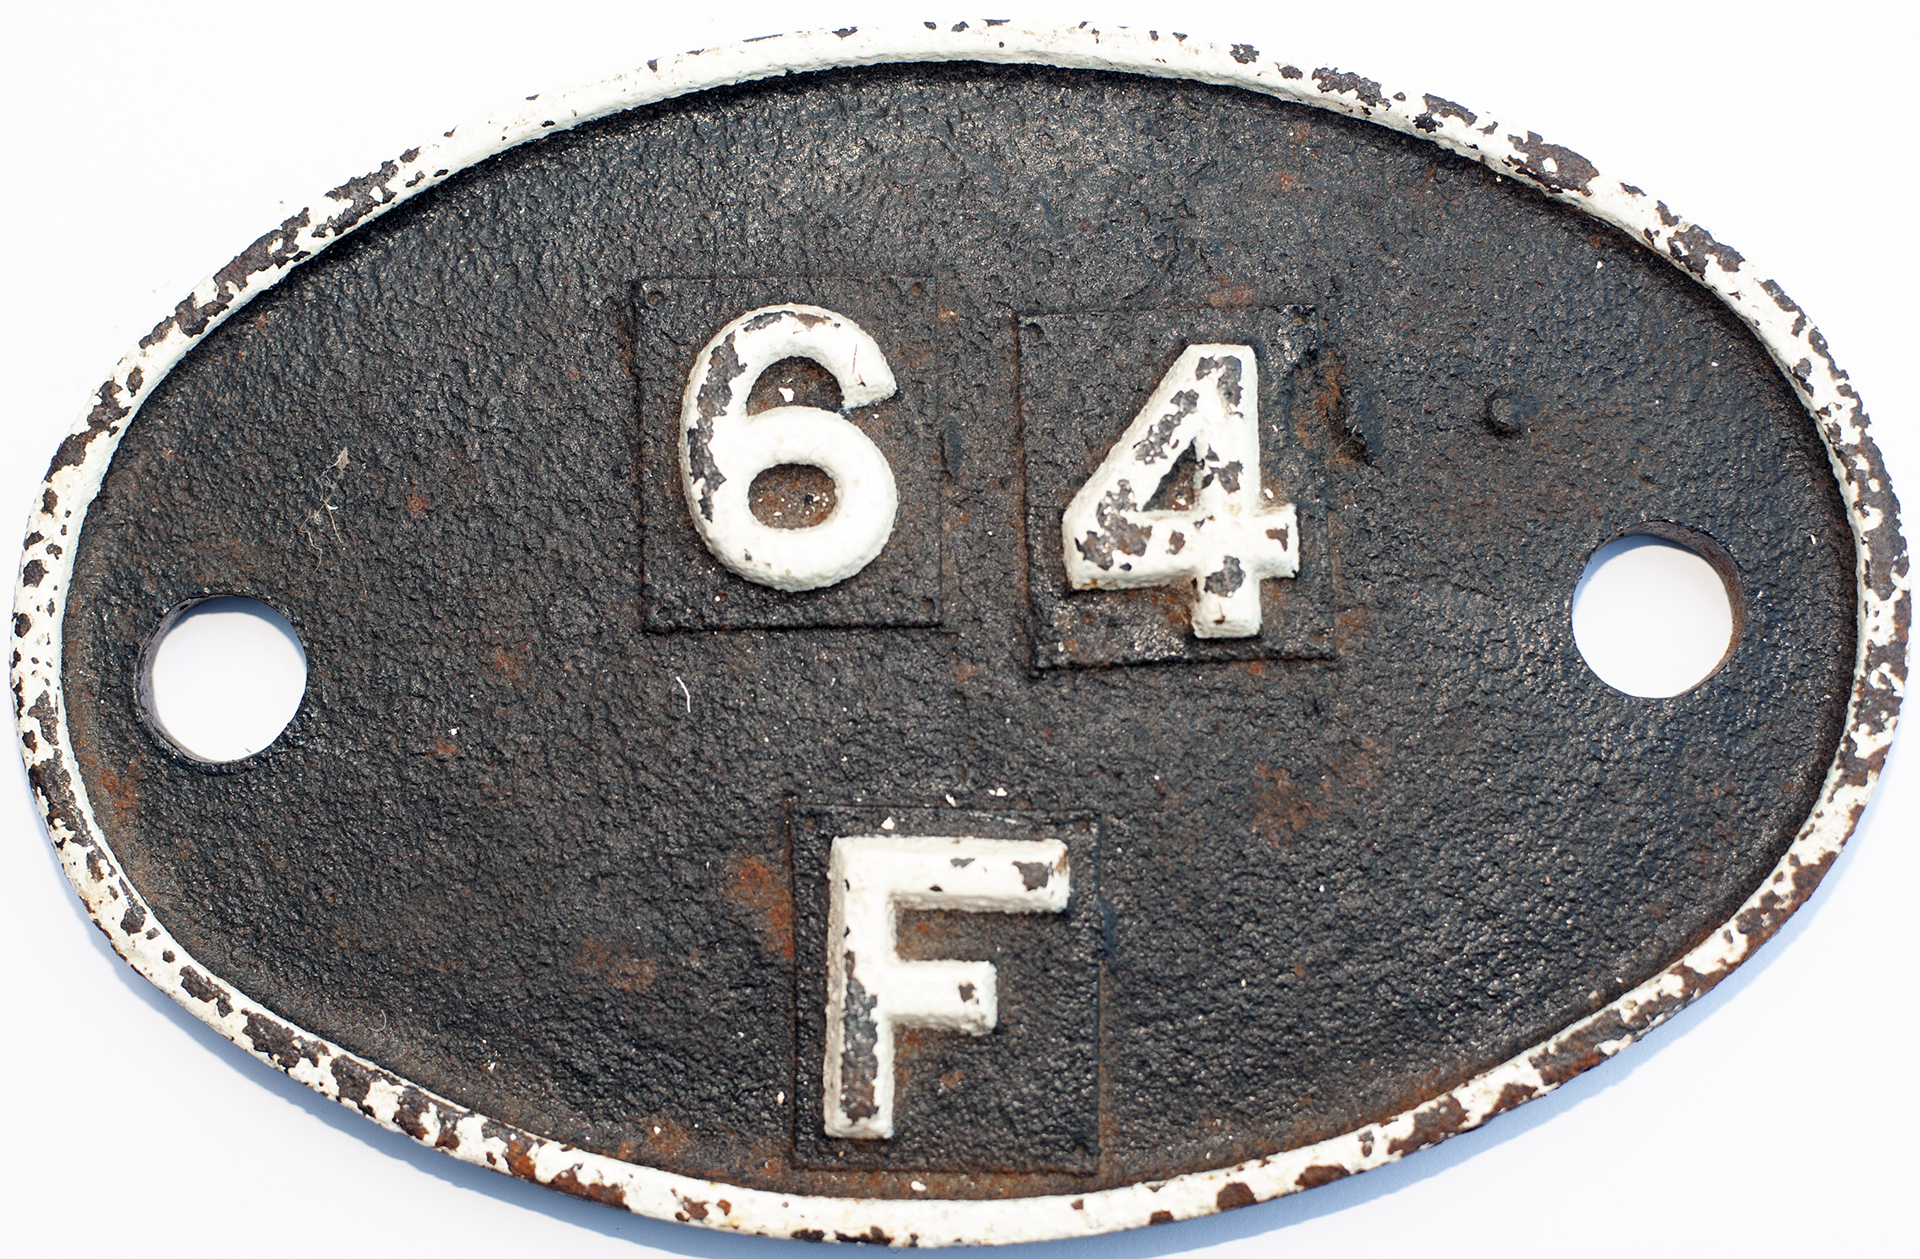 Shedplate 64f Bathgate 1950-1966. In As Removed